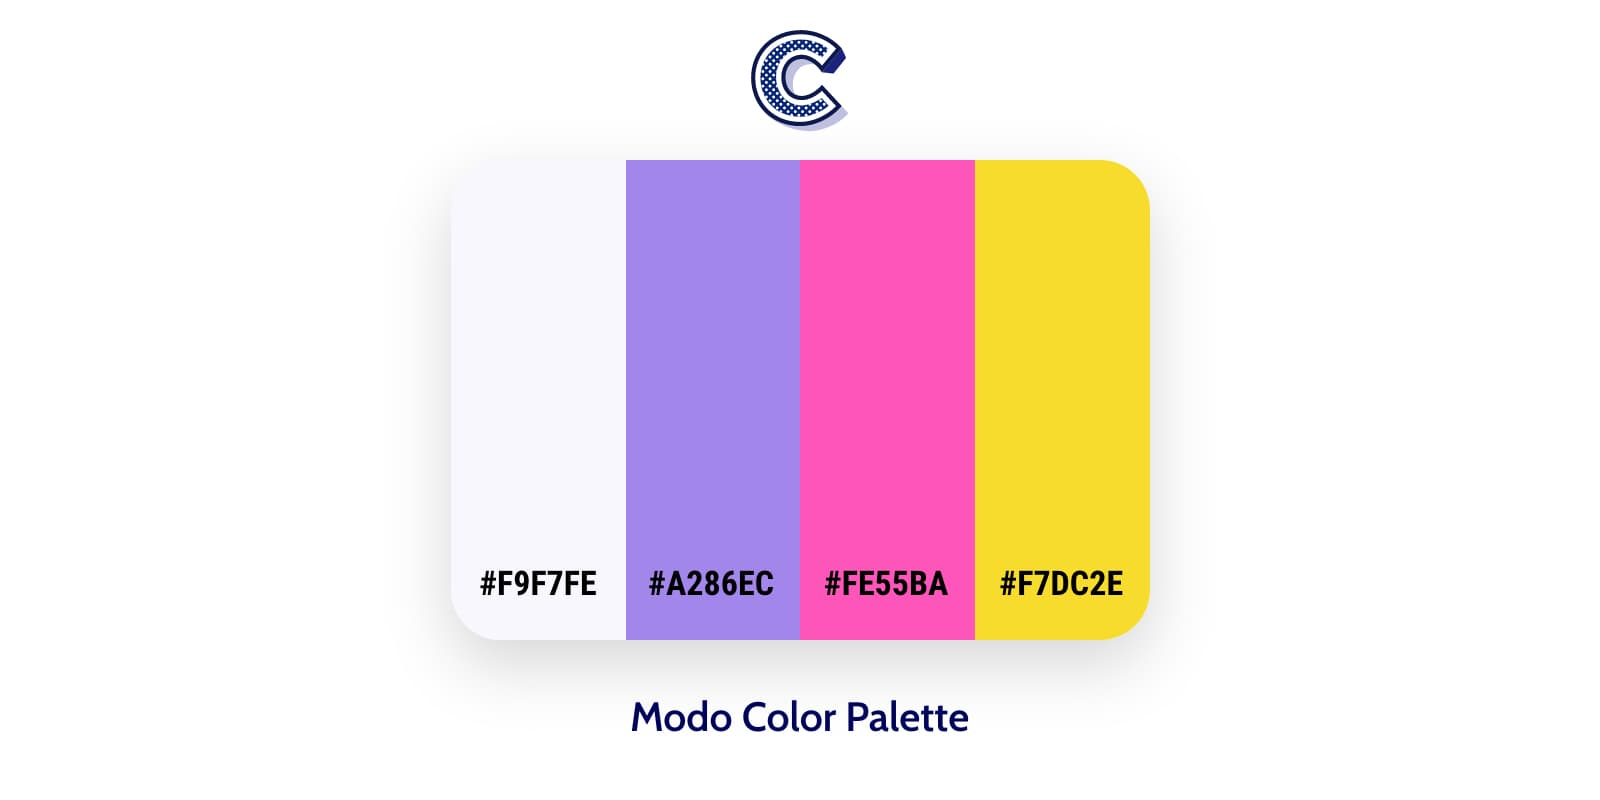 the featured image of modo color palette